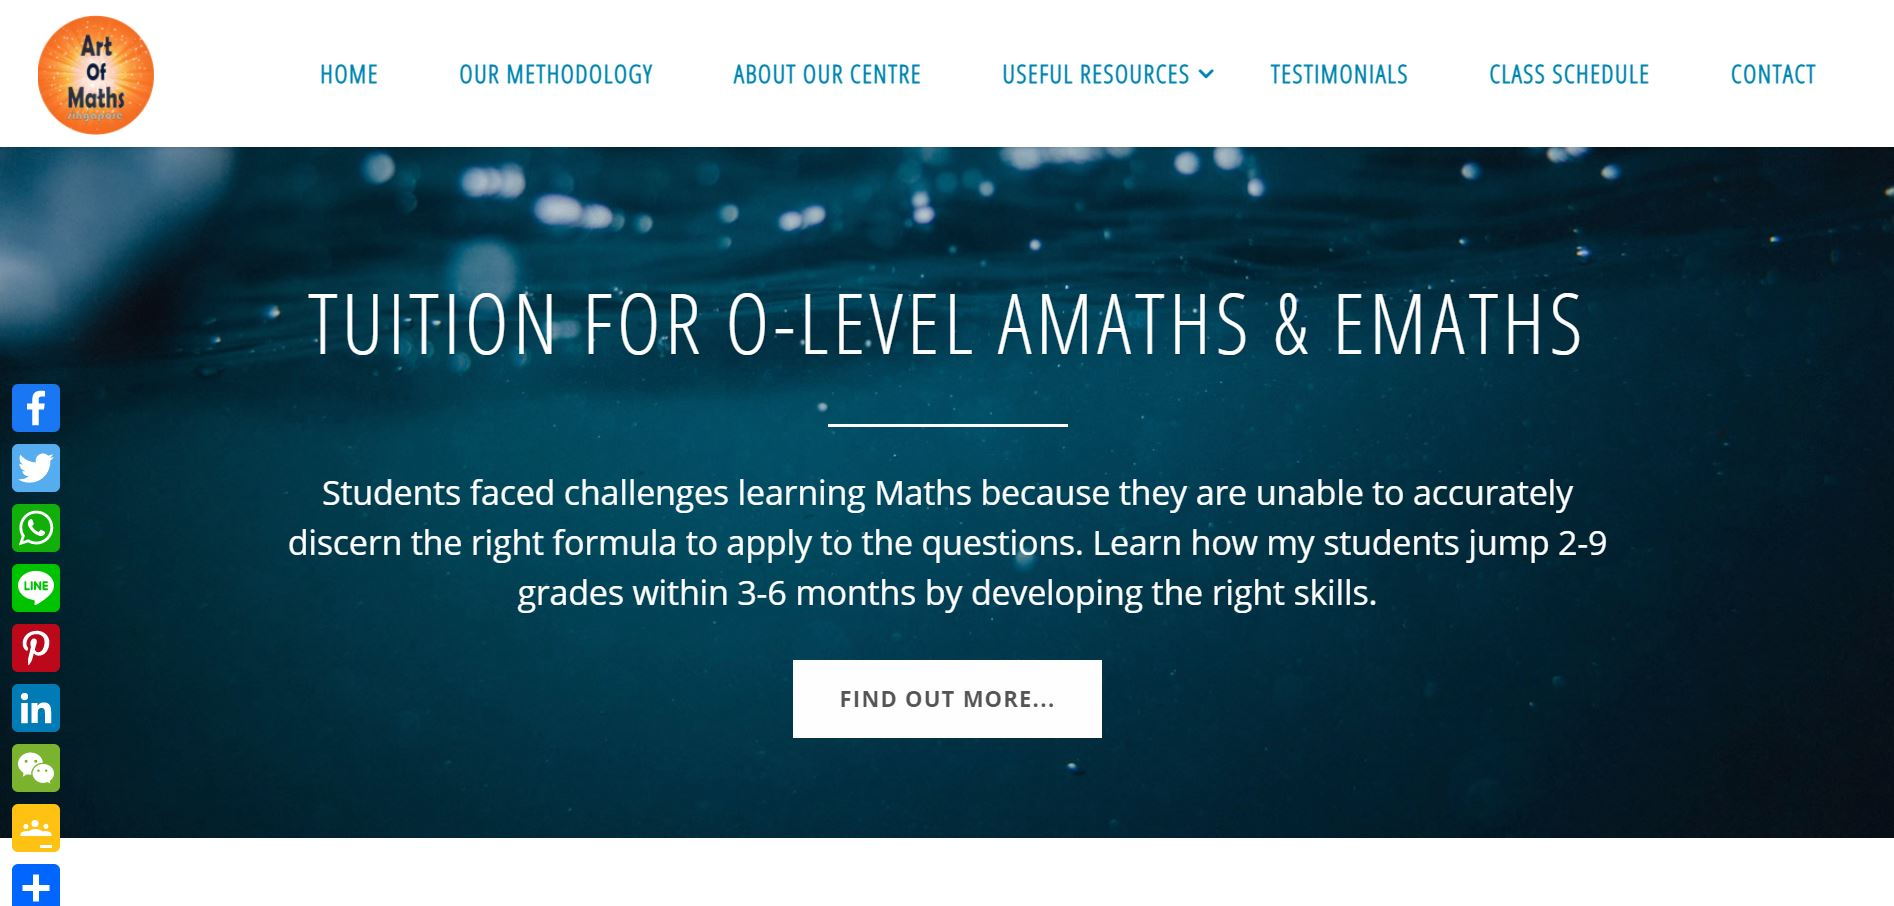 Art of Maths Secondary School Tuition